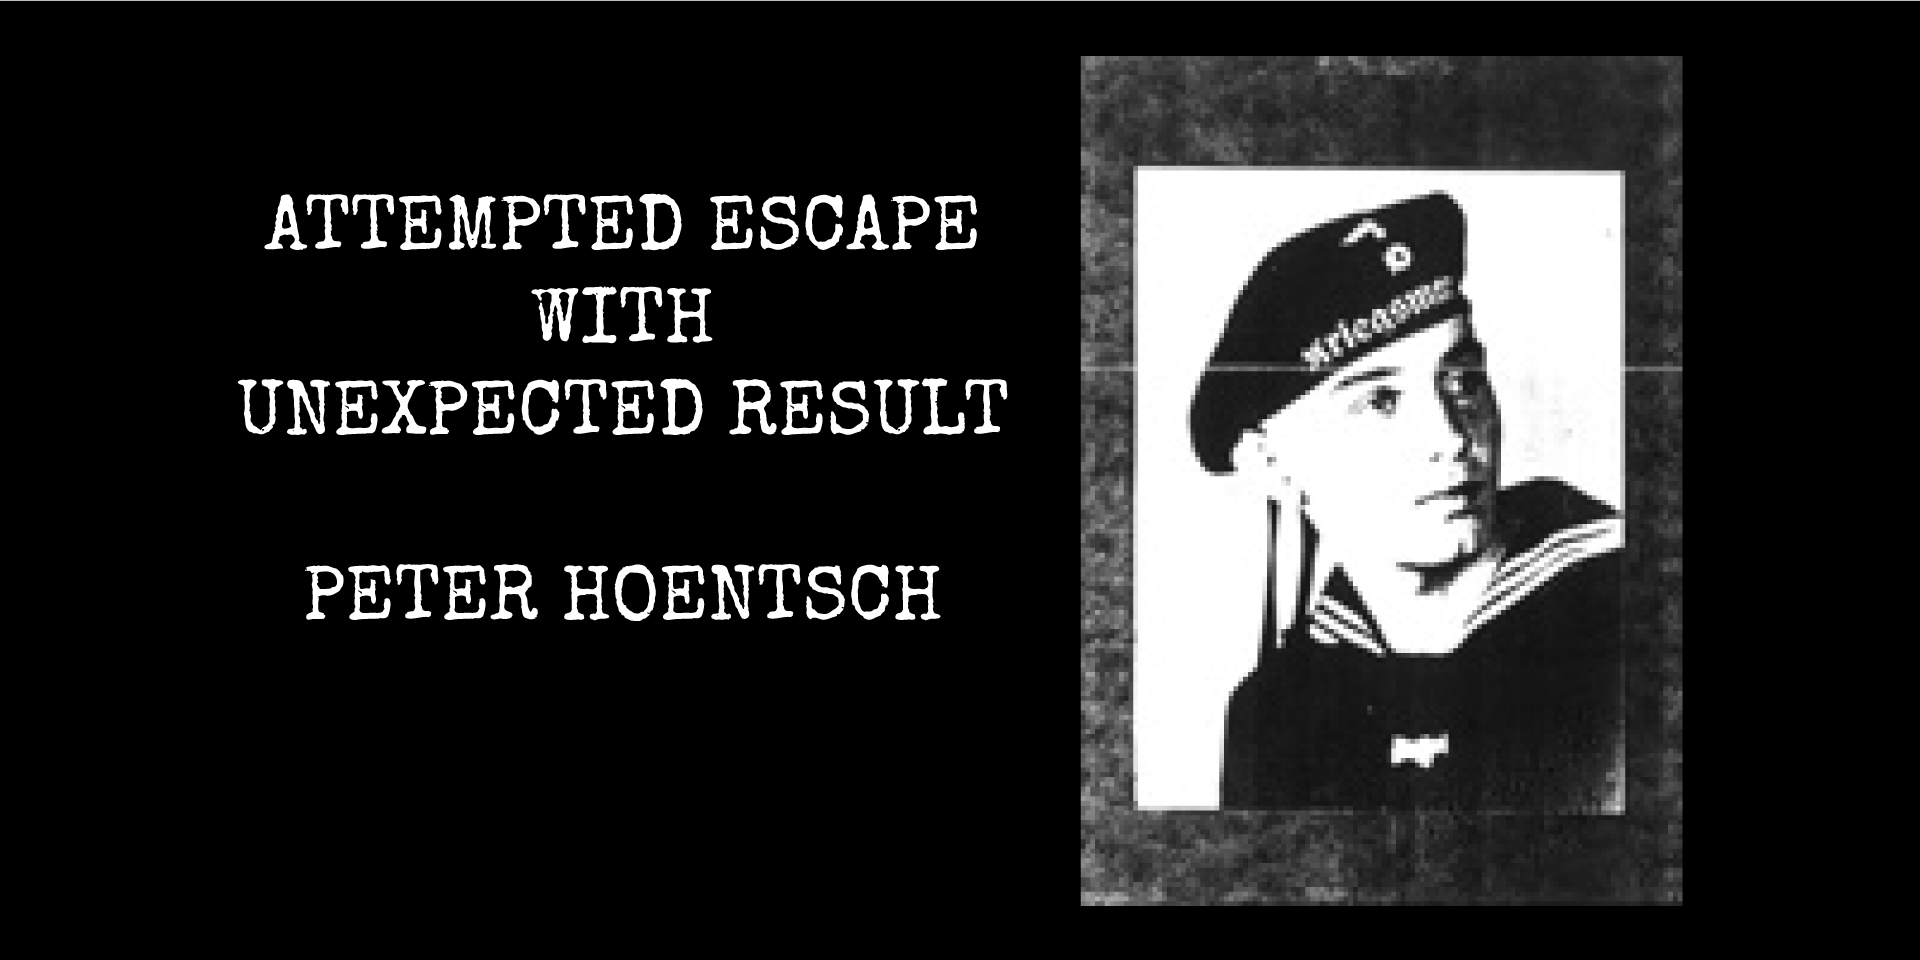 #ForgottenFriday: Share A Story with Peter Hoentsch